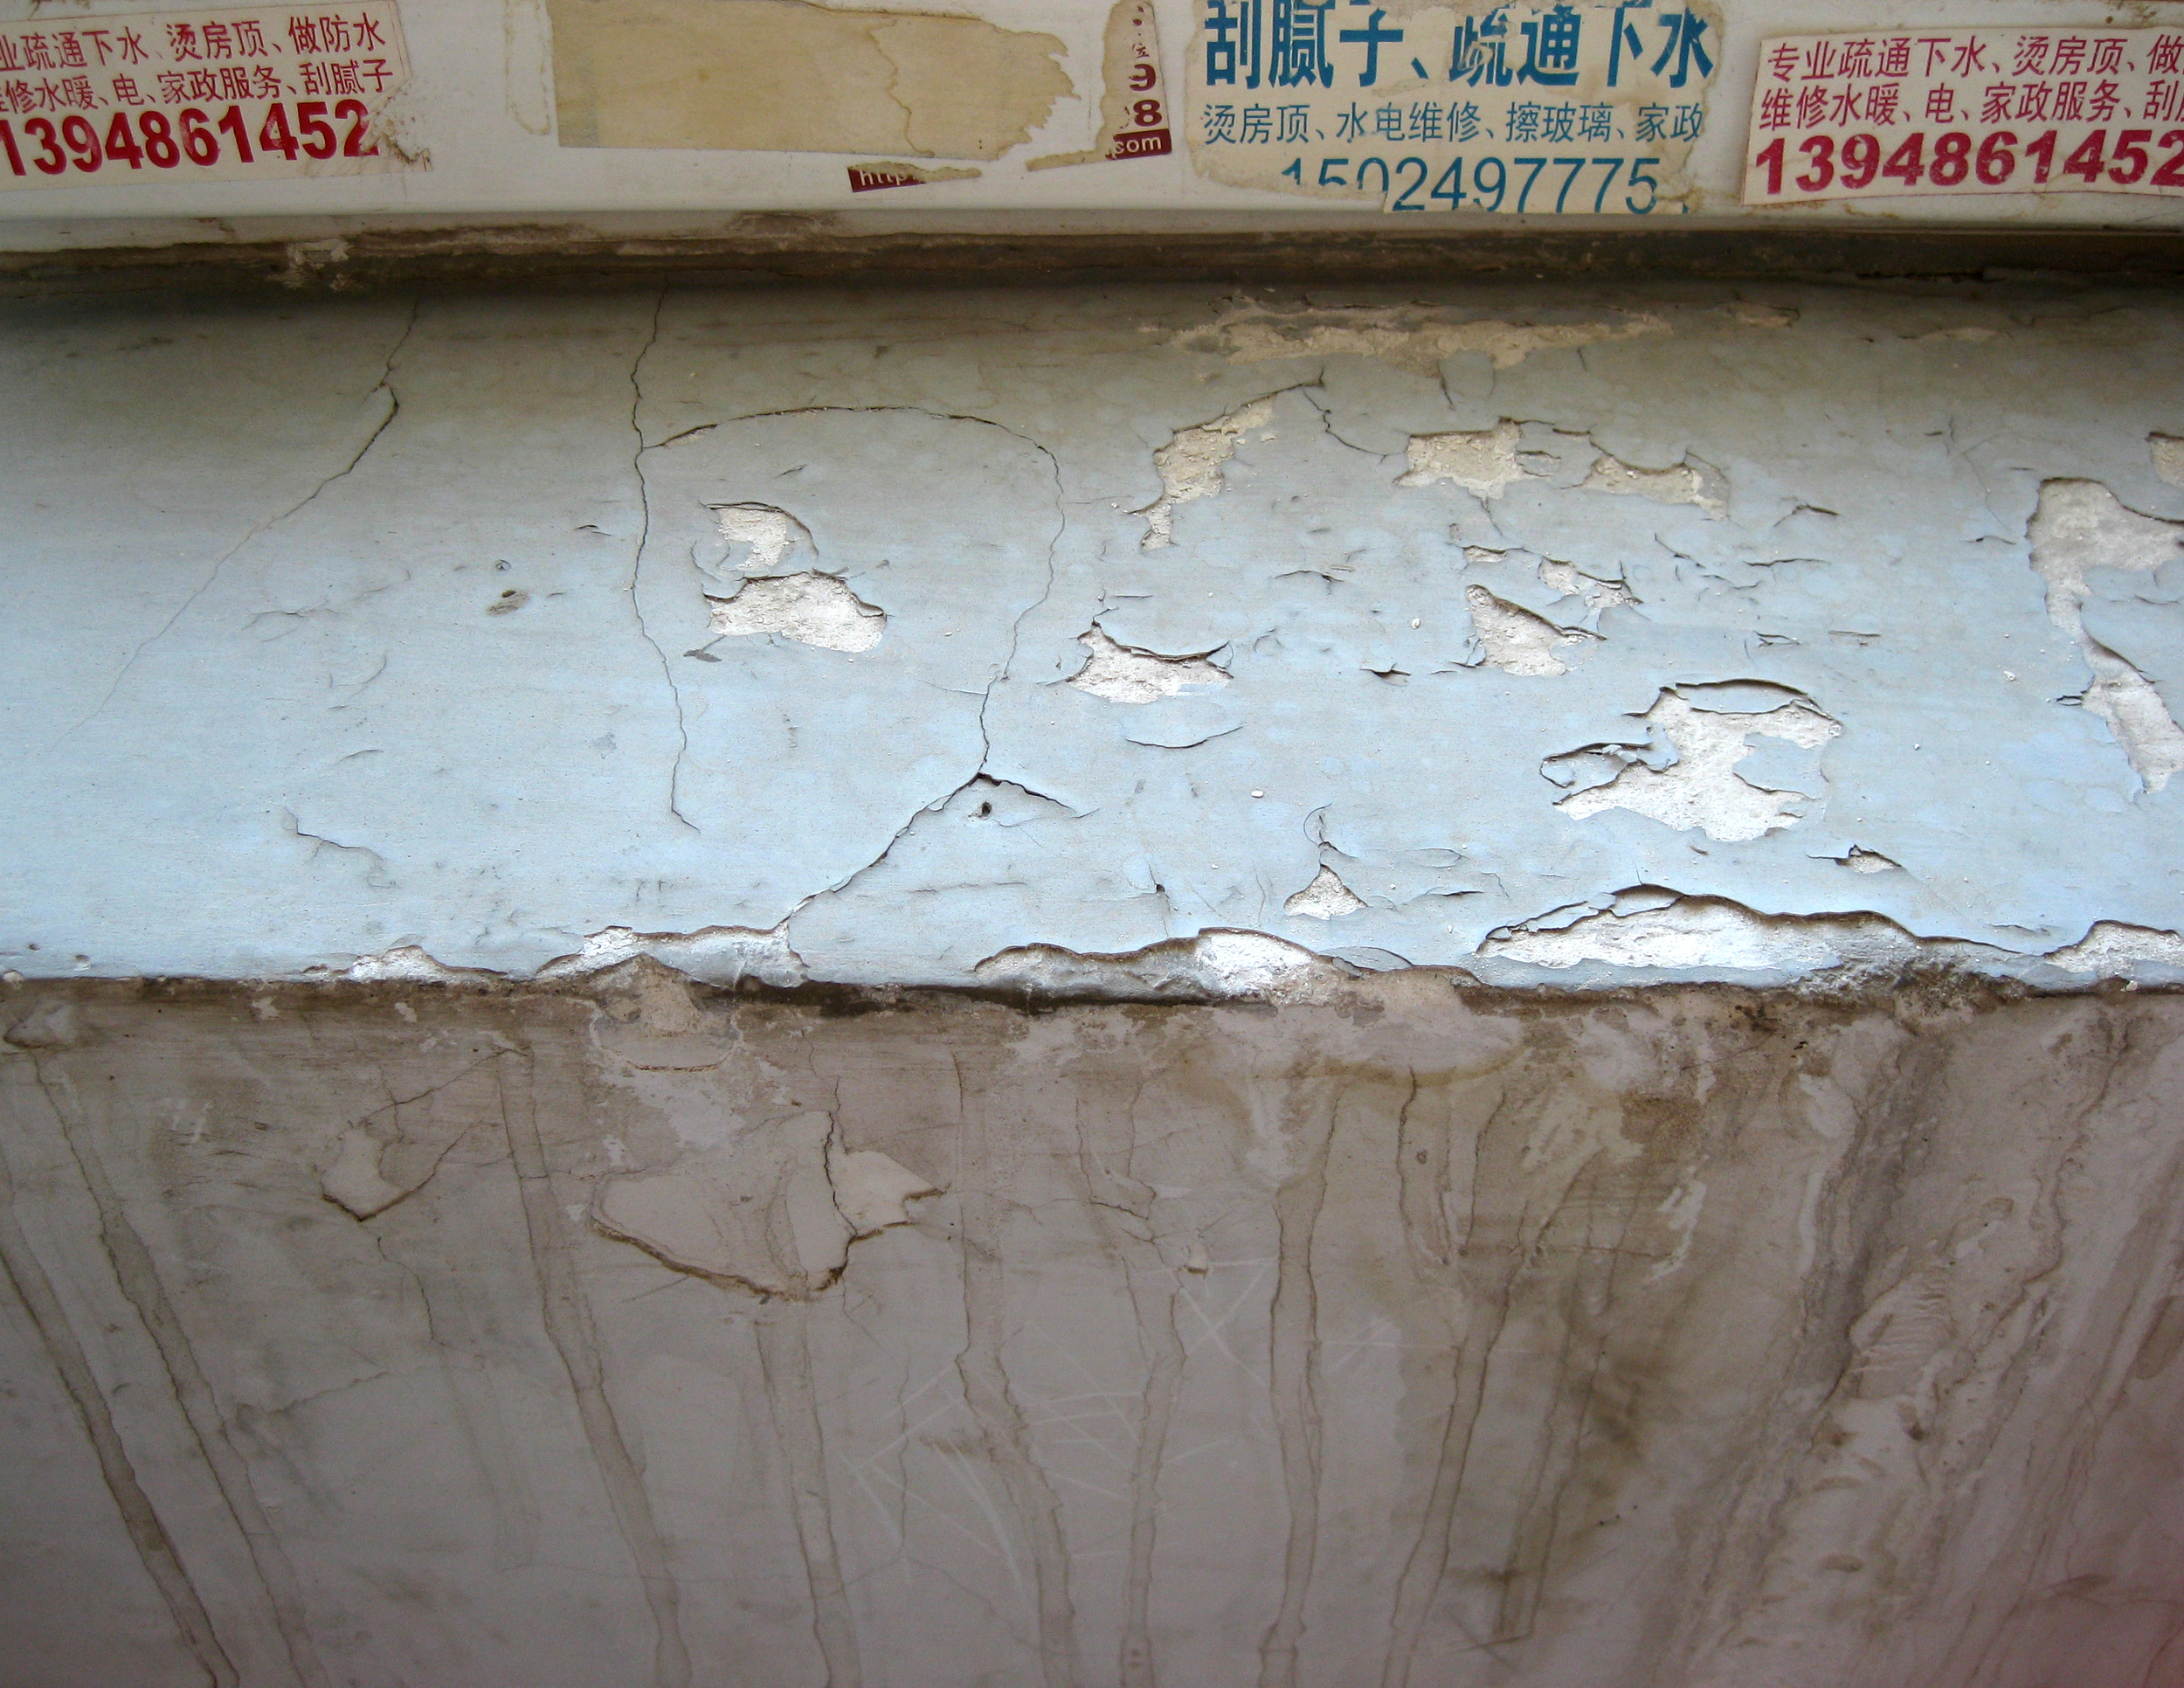 Apartment Building Window Ledge: Hohhot, China